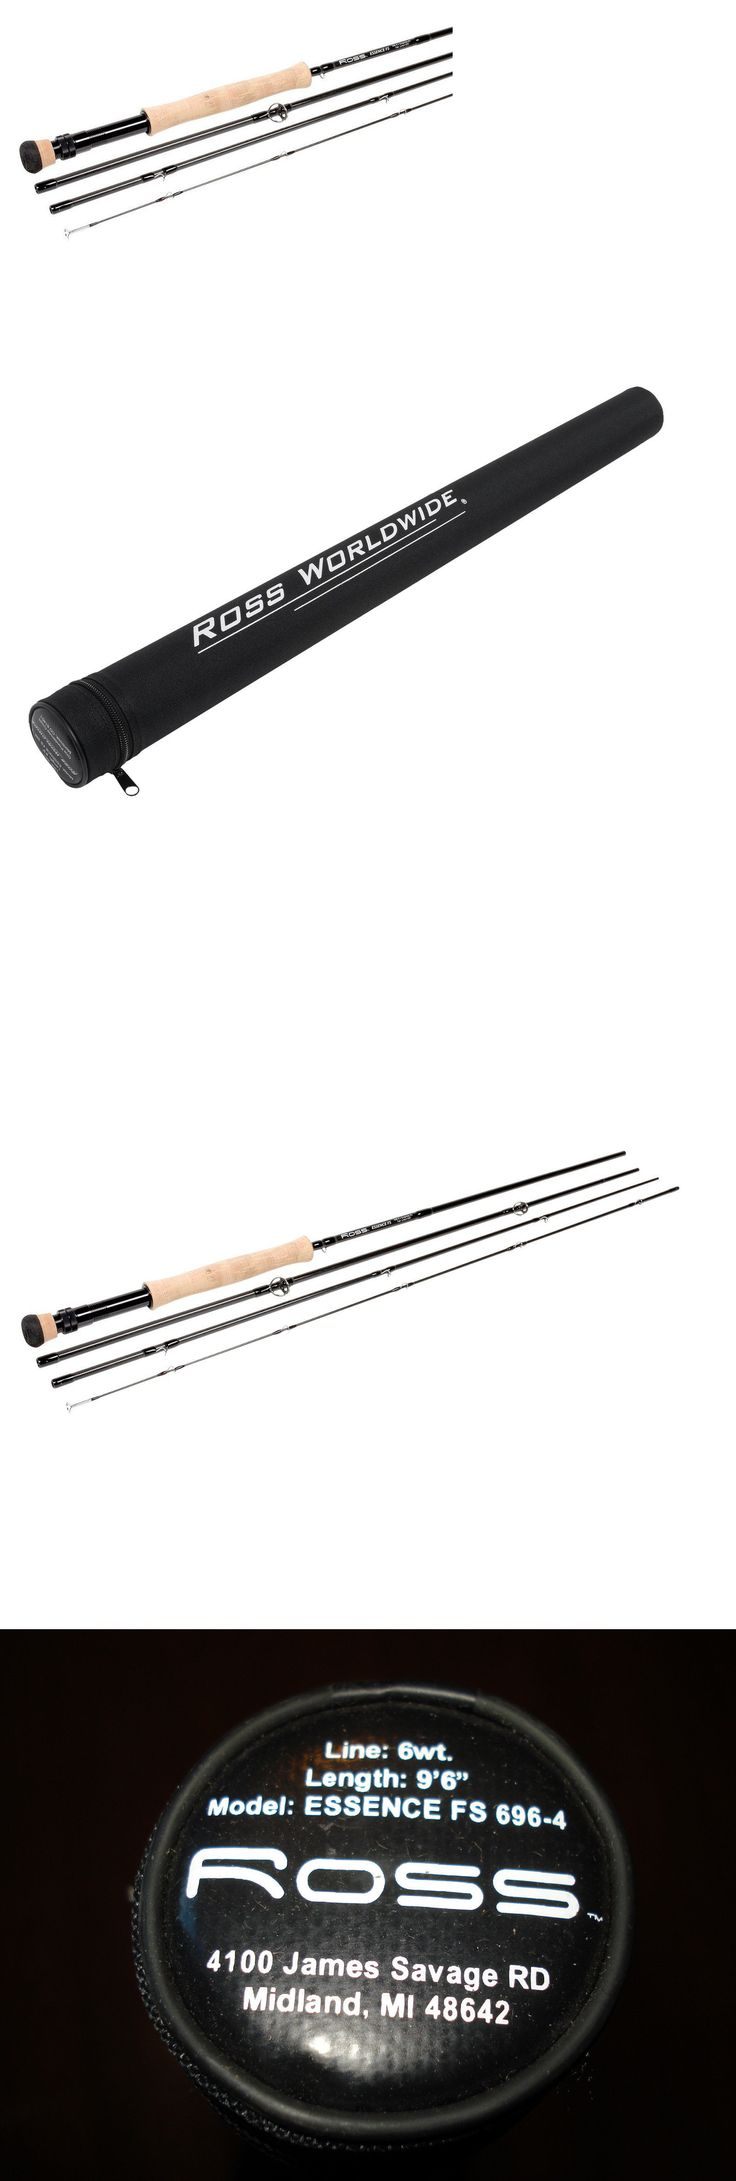 Fly Fishing Rods 23819: Ross Reels Essence Fs 6 Lb 9 6 4 Piece Fly Fishing Rod With Hard Case Fs 696-4 -> BUY IT NOW ONLY: $79.99 on eBay!